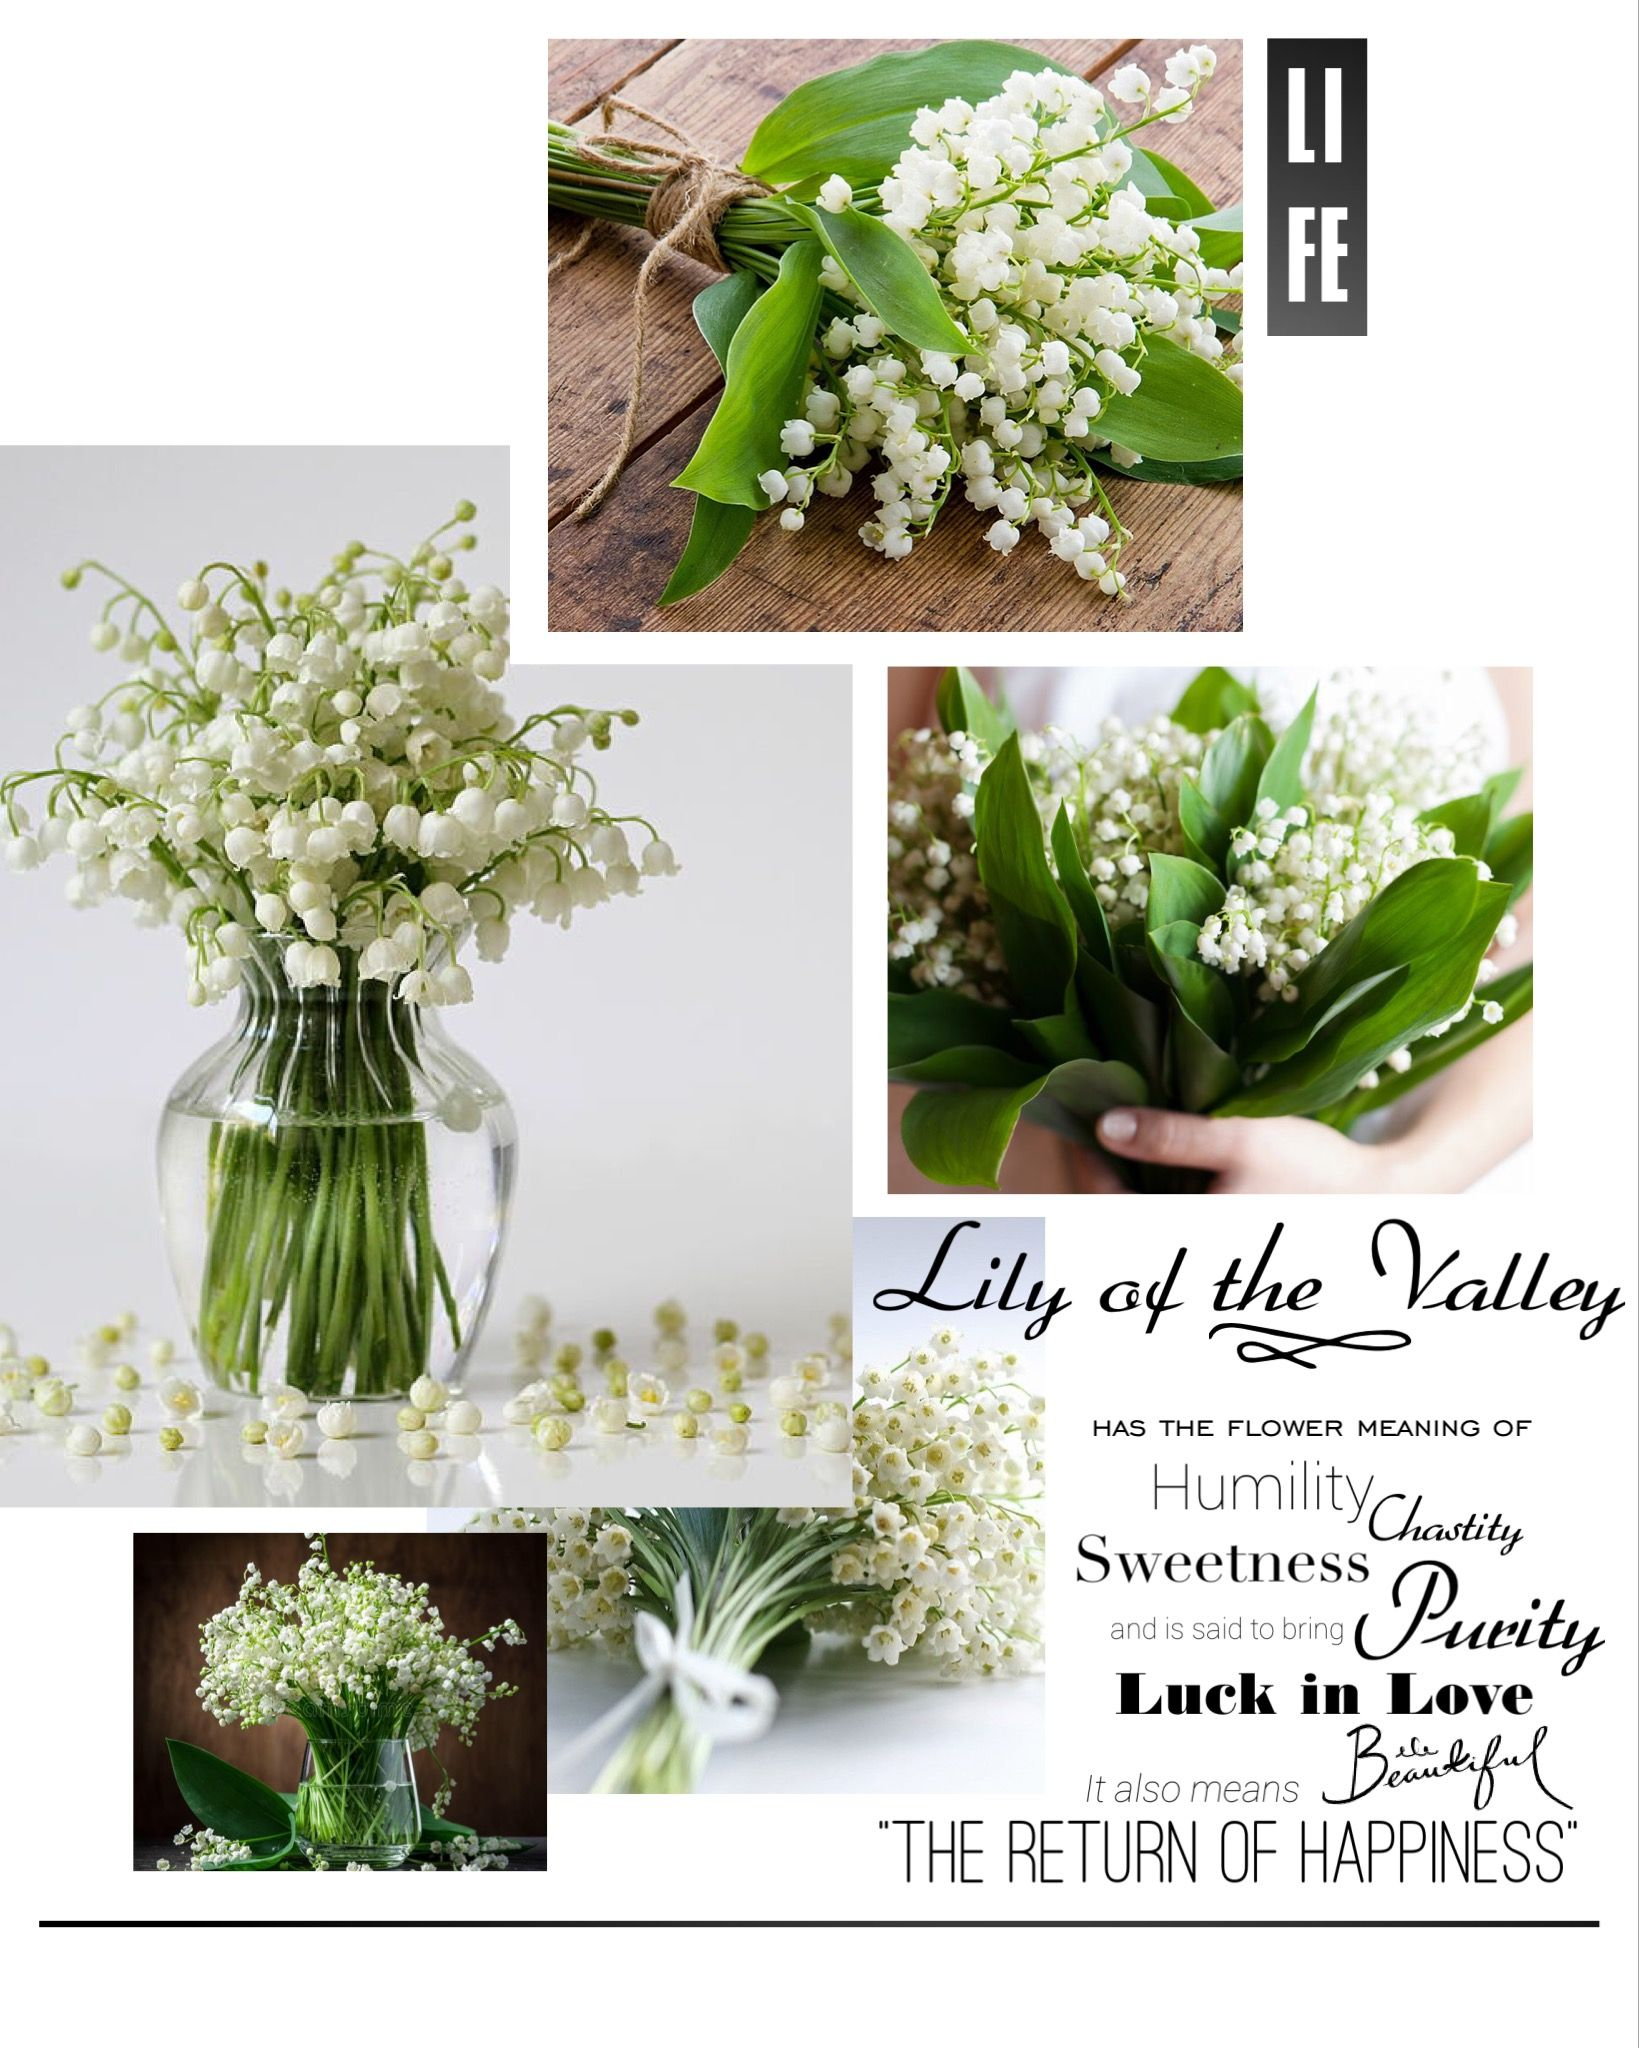 Lily of the valley has the flower meaning of humility